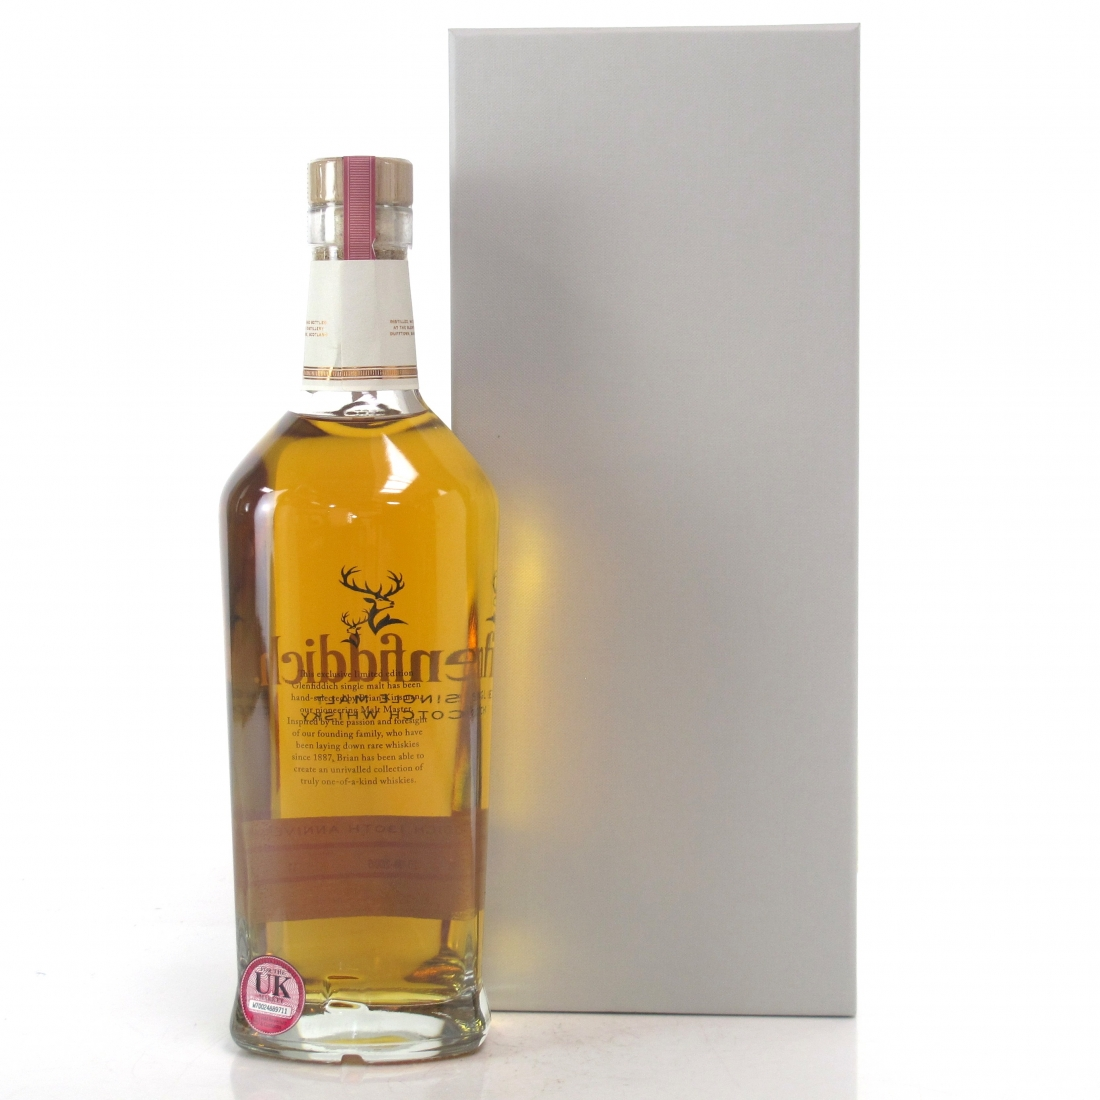 Glenfiddich 21 Year Old Rare Cask Distillery Exclusive